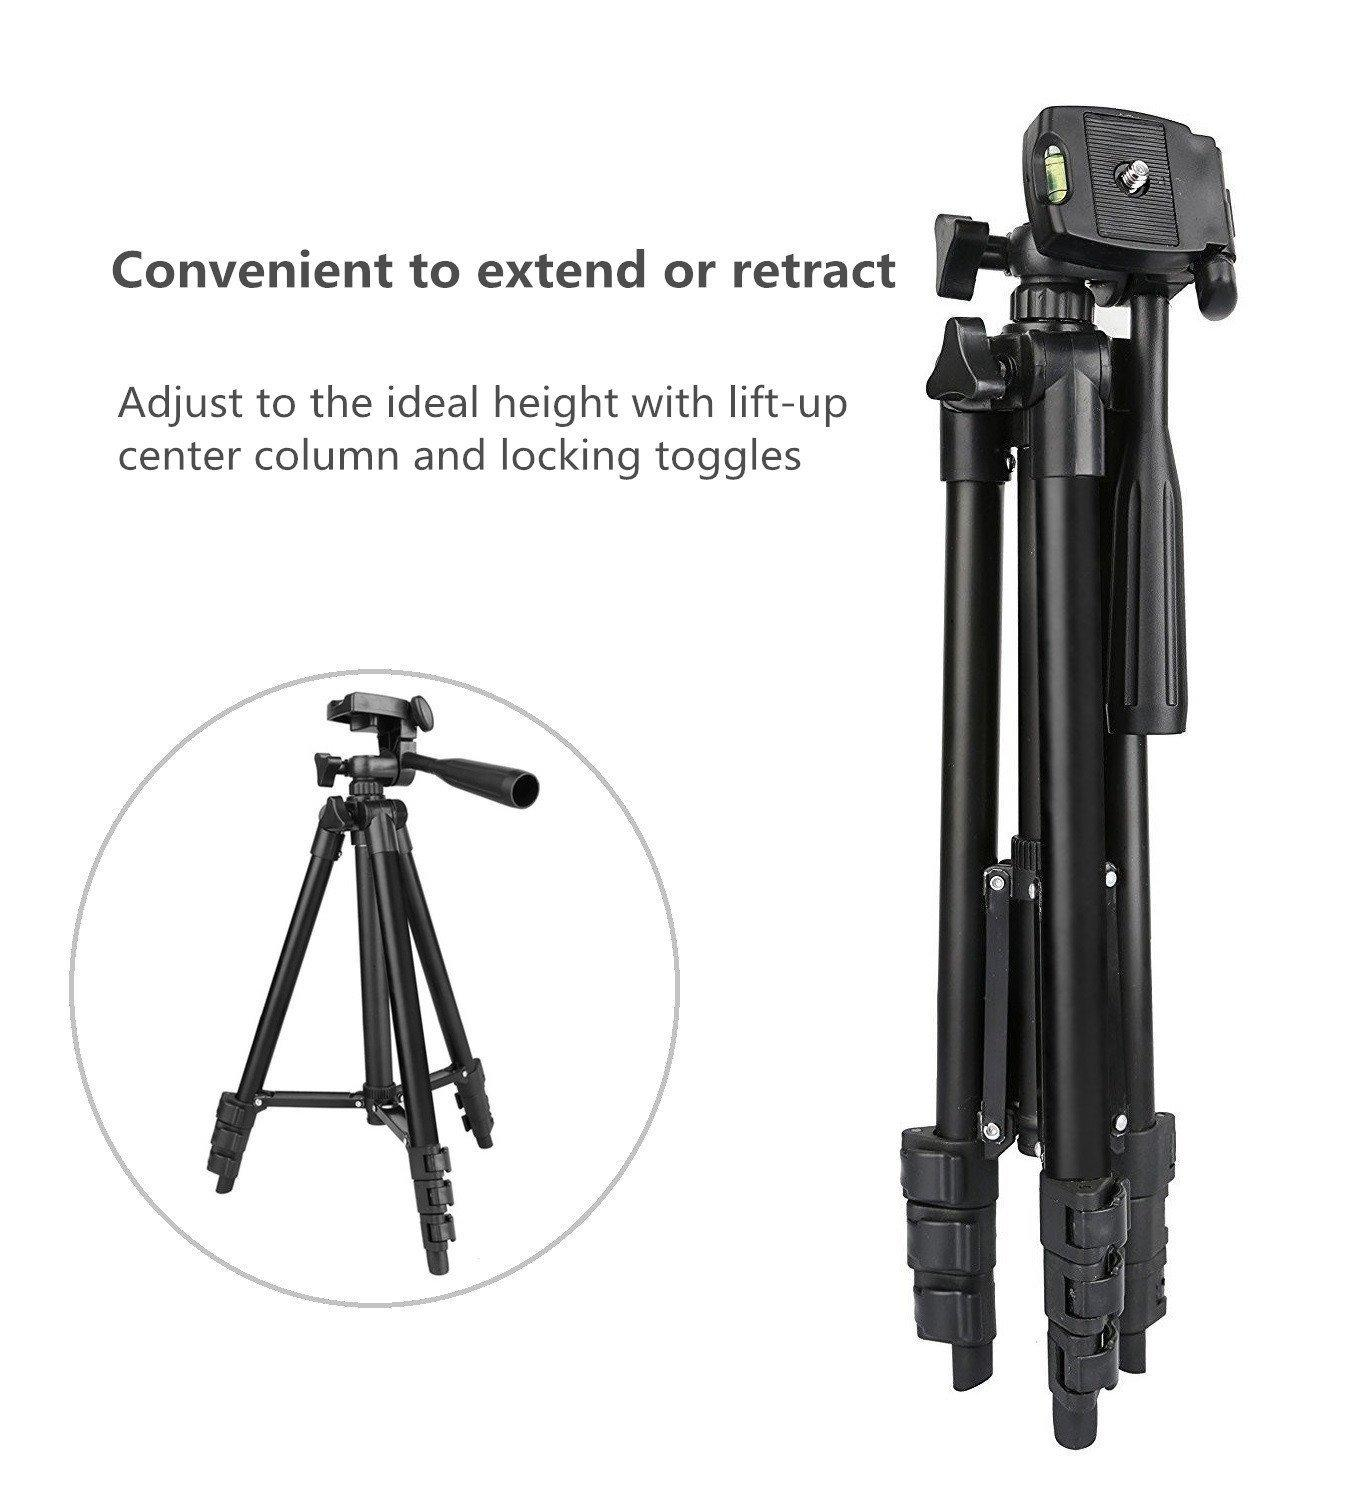 Tripod 3120 Mobile & Portable Camera Tripod with 3